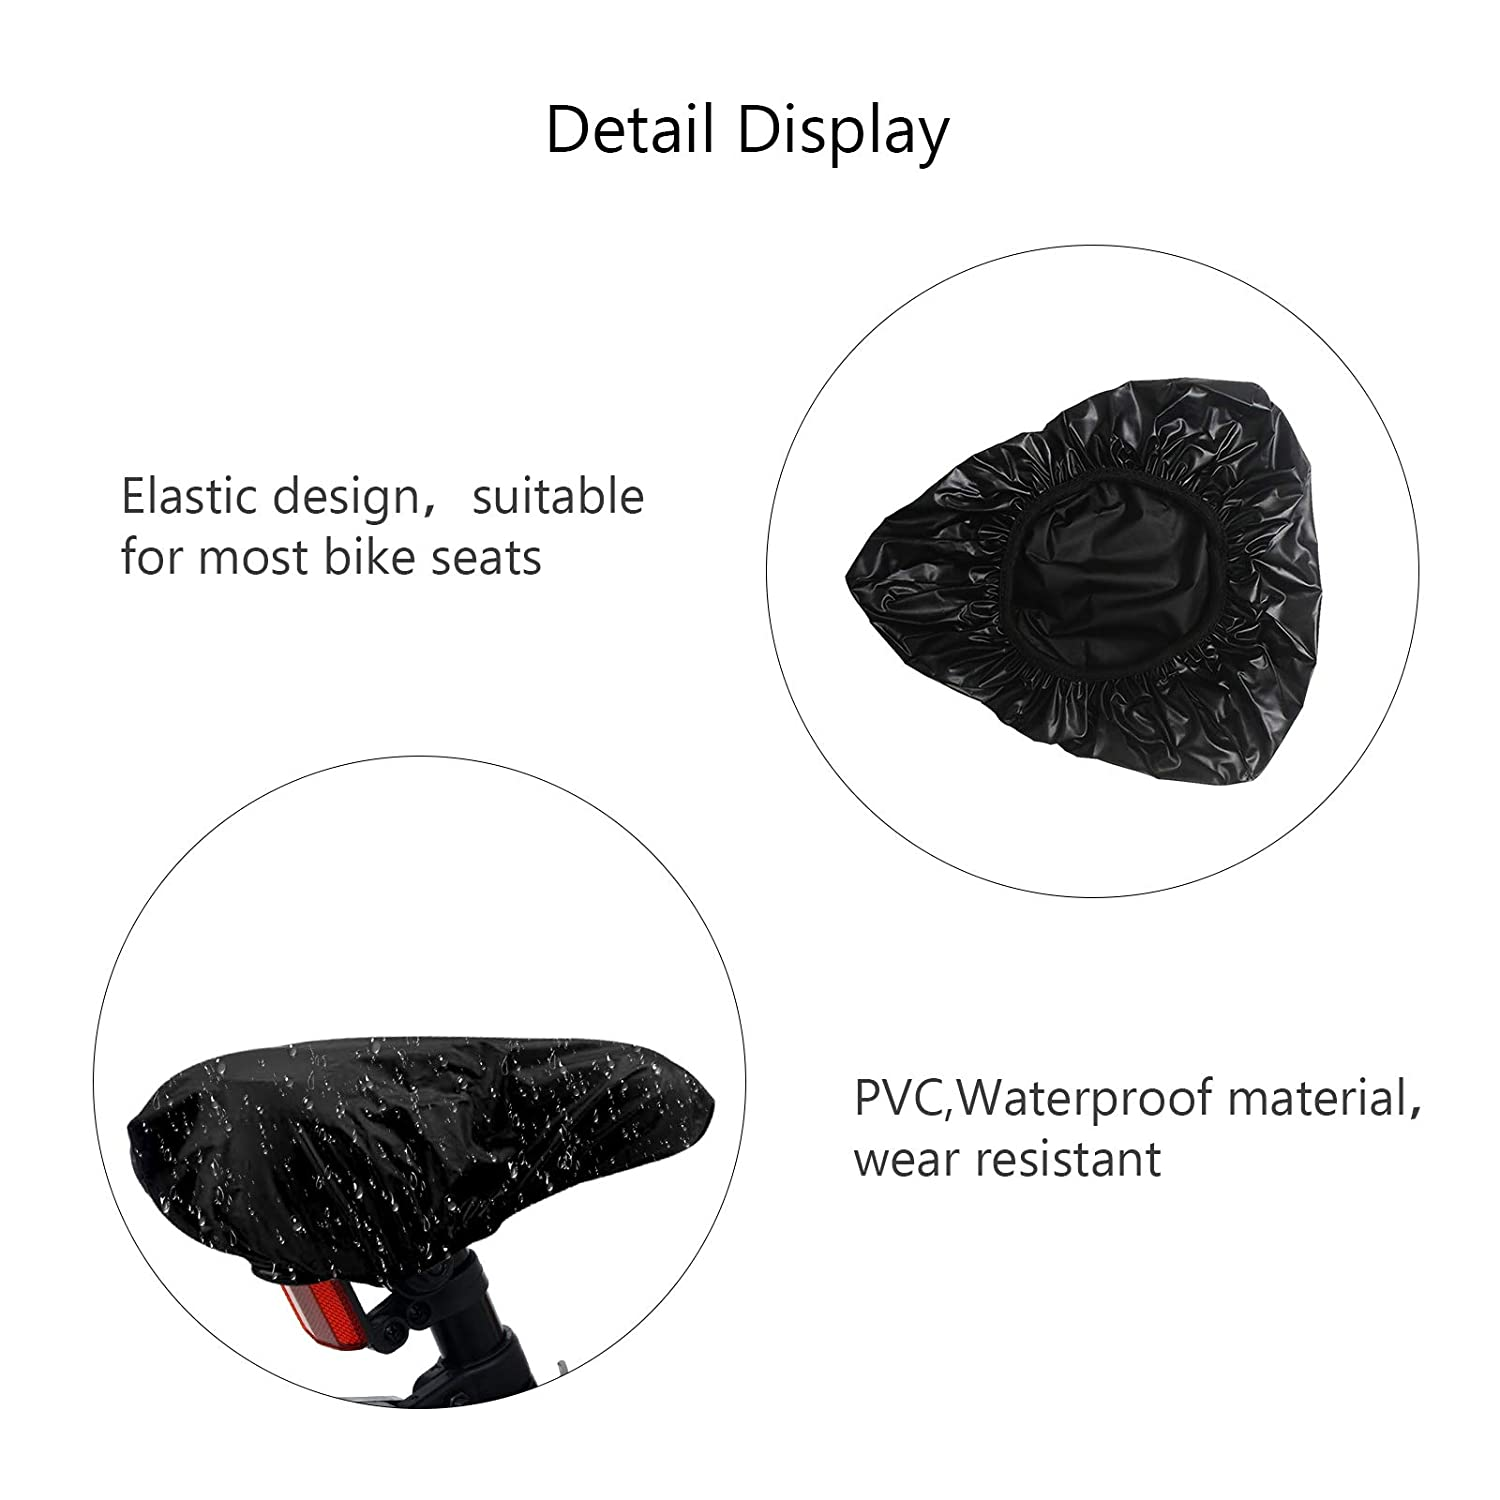 TAZEMAT 3 Packs Waterproof Bike Seat Cover Black Bicycle Saddle Cover Unisex Elastic Bike Saddle Rain Cover Universal Outdoor Portable Road Mountain Bicycle Dust Sun Resistant Seat Protector